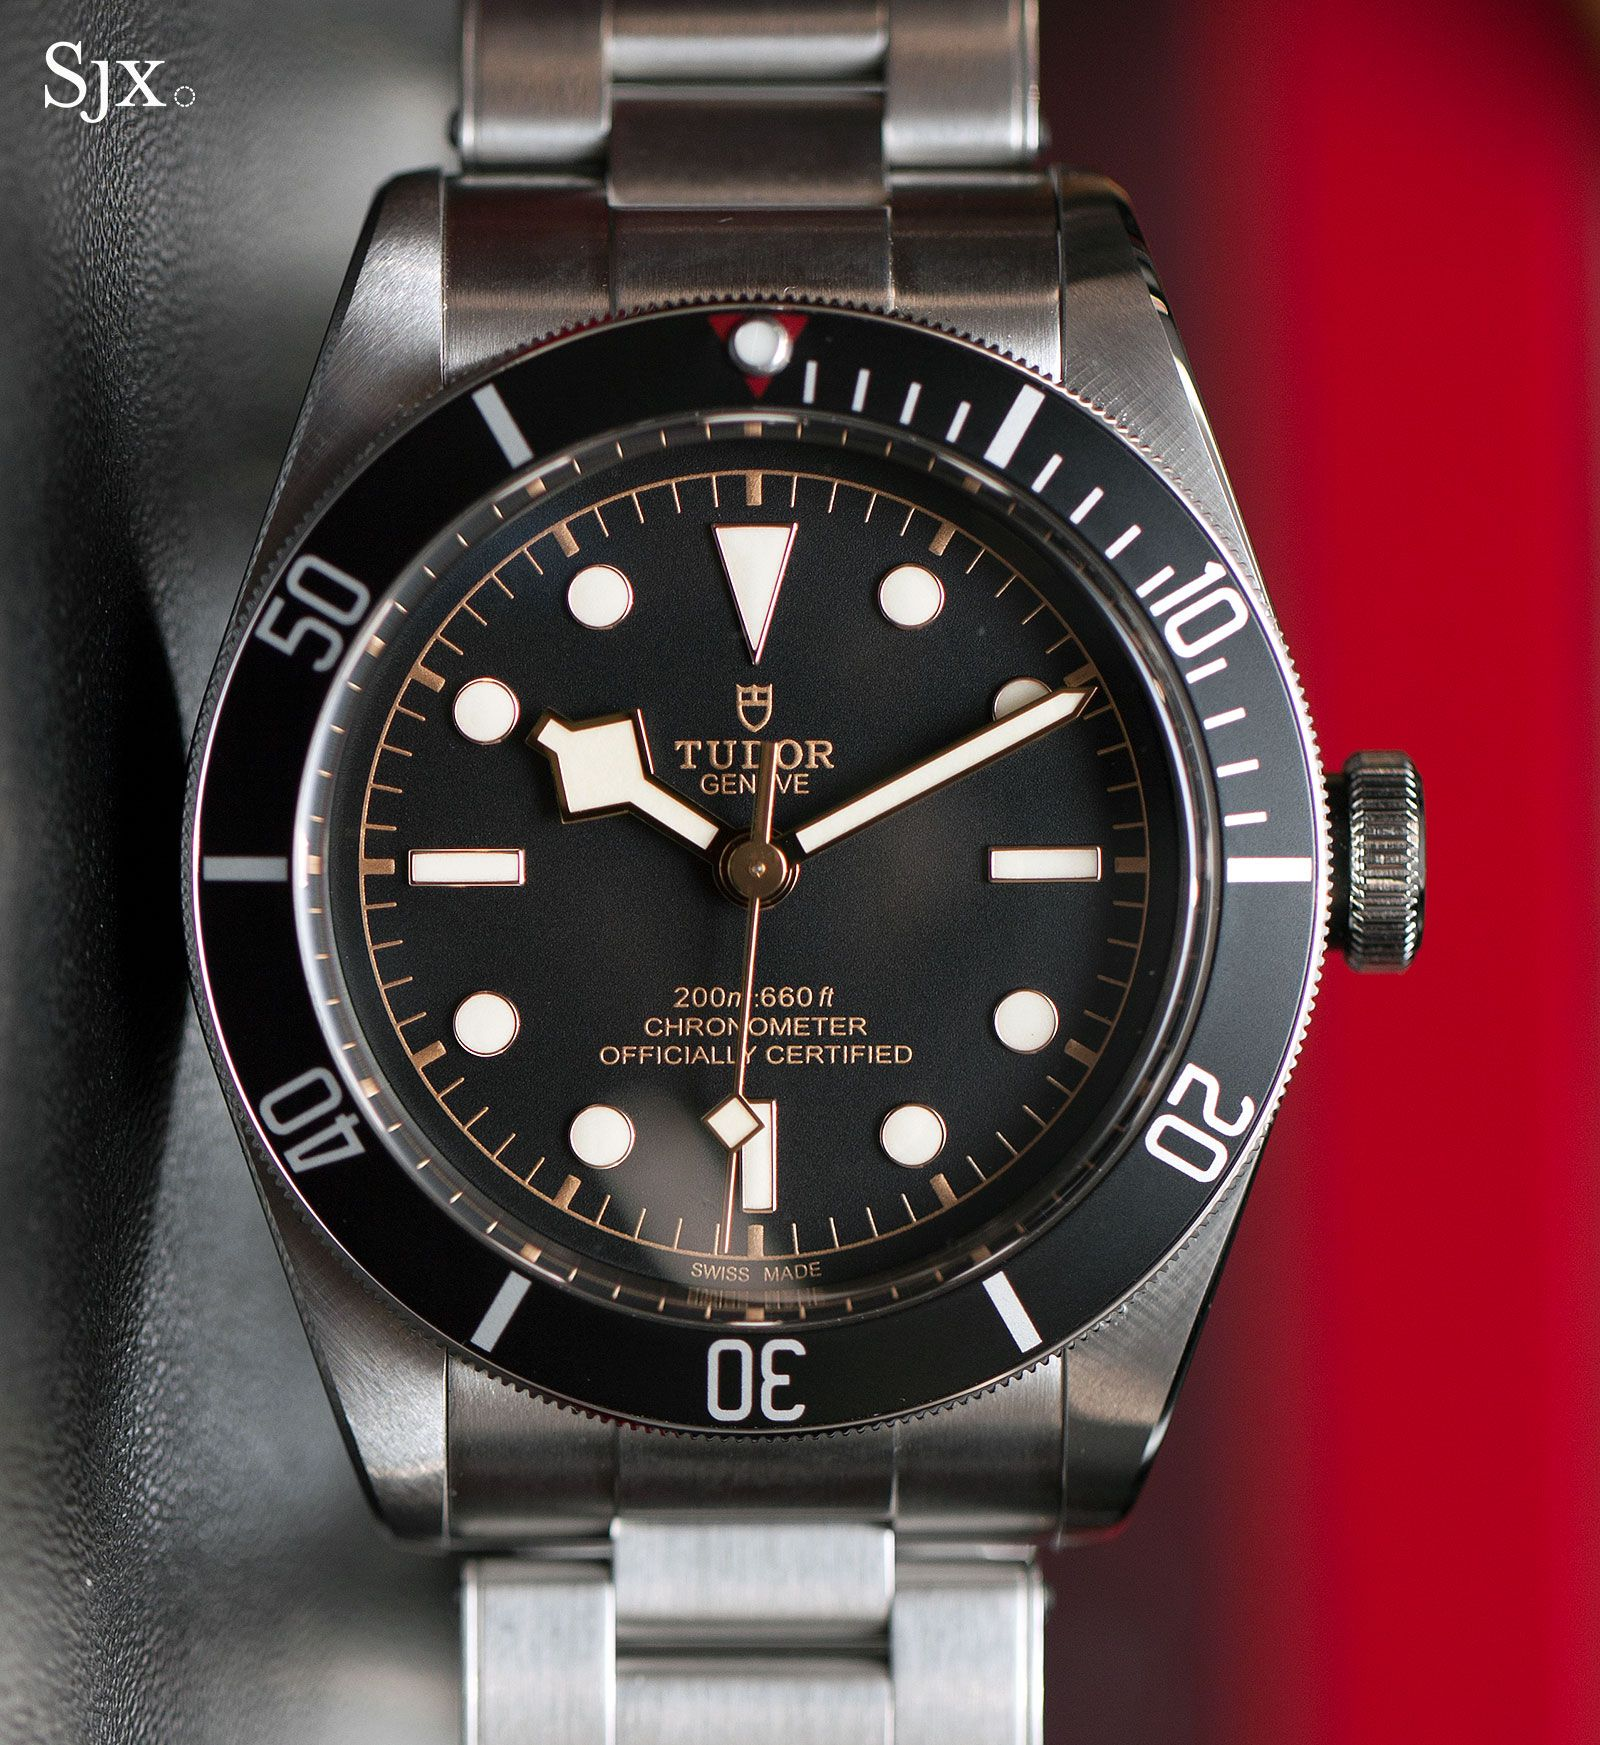 Tudor Black Bay Black 79230N 1 /// Founded 170 years ago, GOBBI 1842 is an official retail store for refined jewelleries and luxury watches such as Tudor in Milan. Check the website : http://www.gobbi1842.it/?lang=en